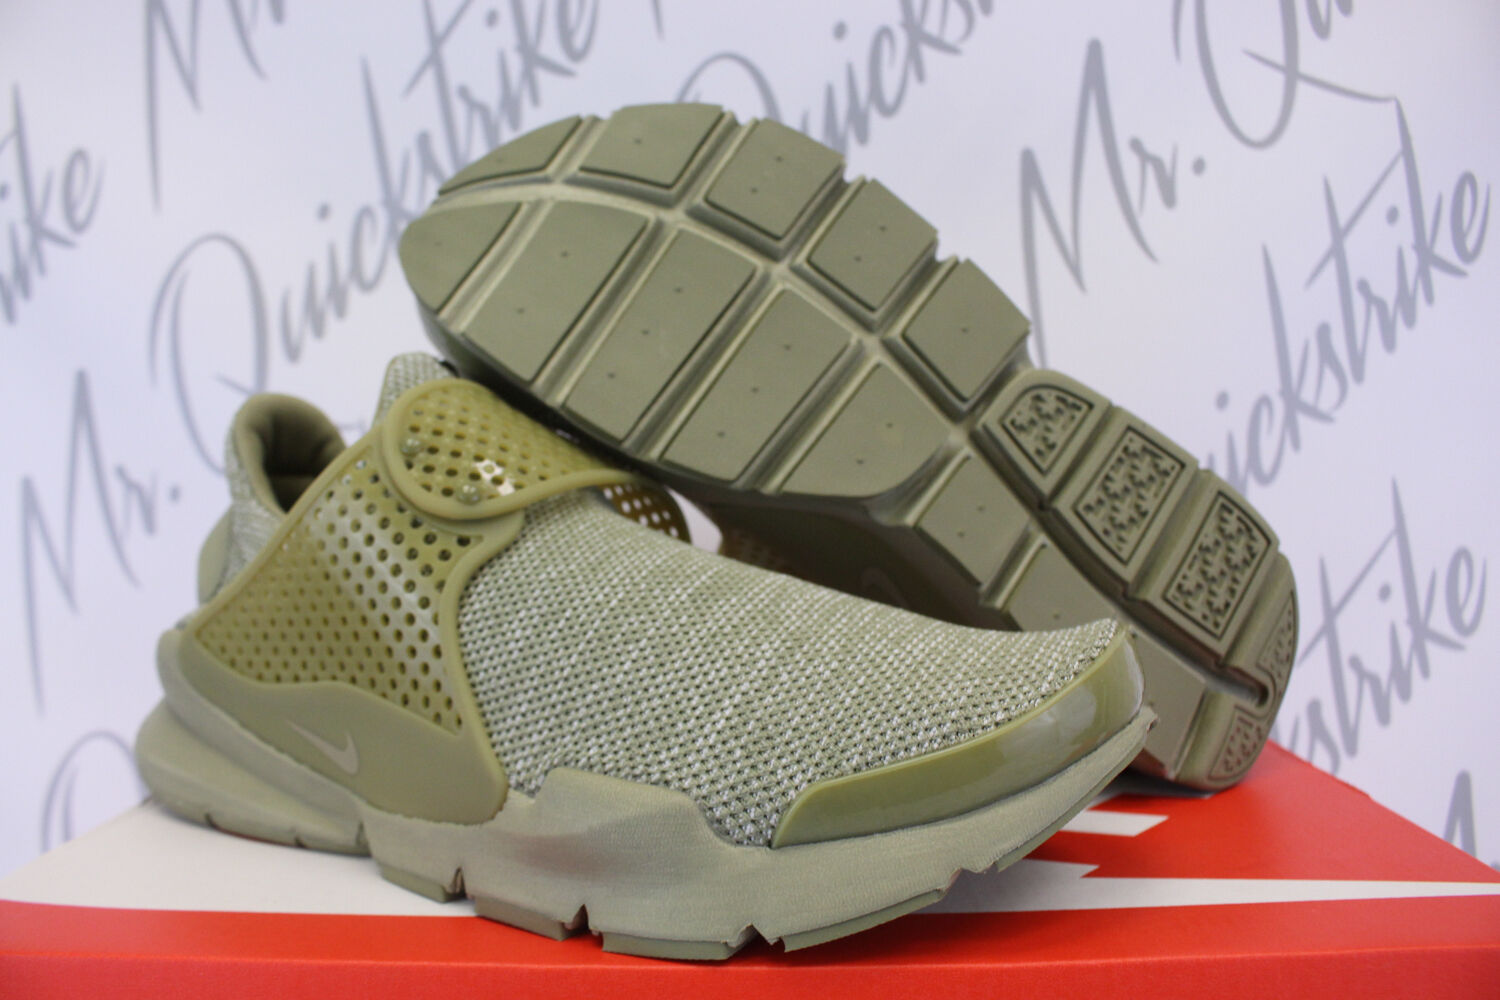 NIKE SOCK DART BR SZ 10 BREATHE TROOPER OLIVE GREEN 909551 200